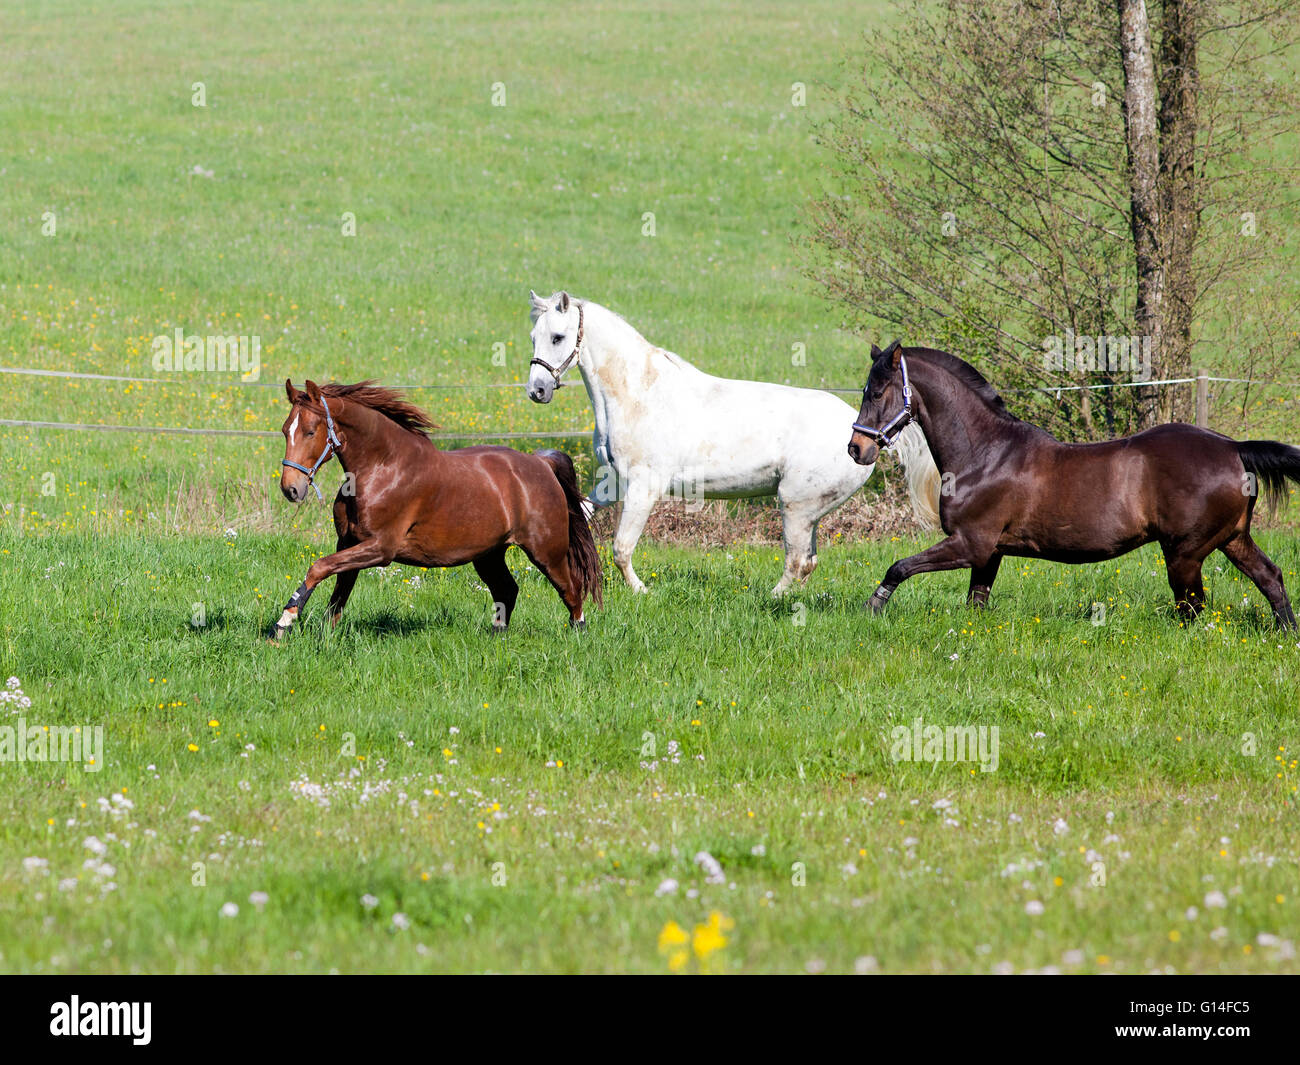 Three beautiful horses gallop on pasture - Stock Image